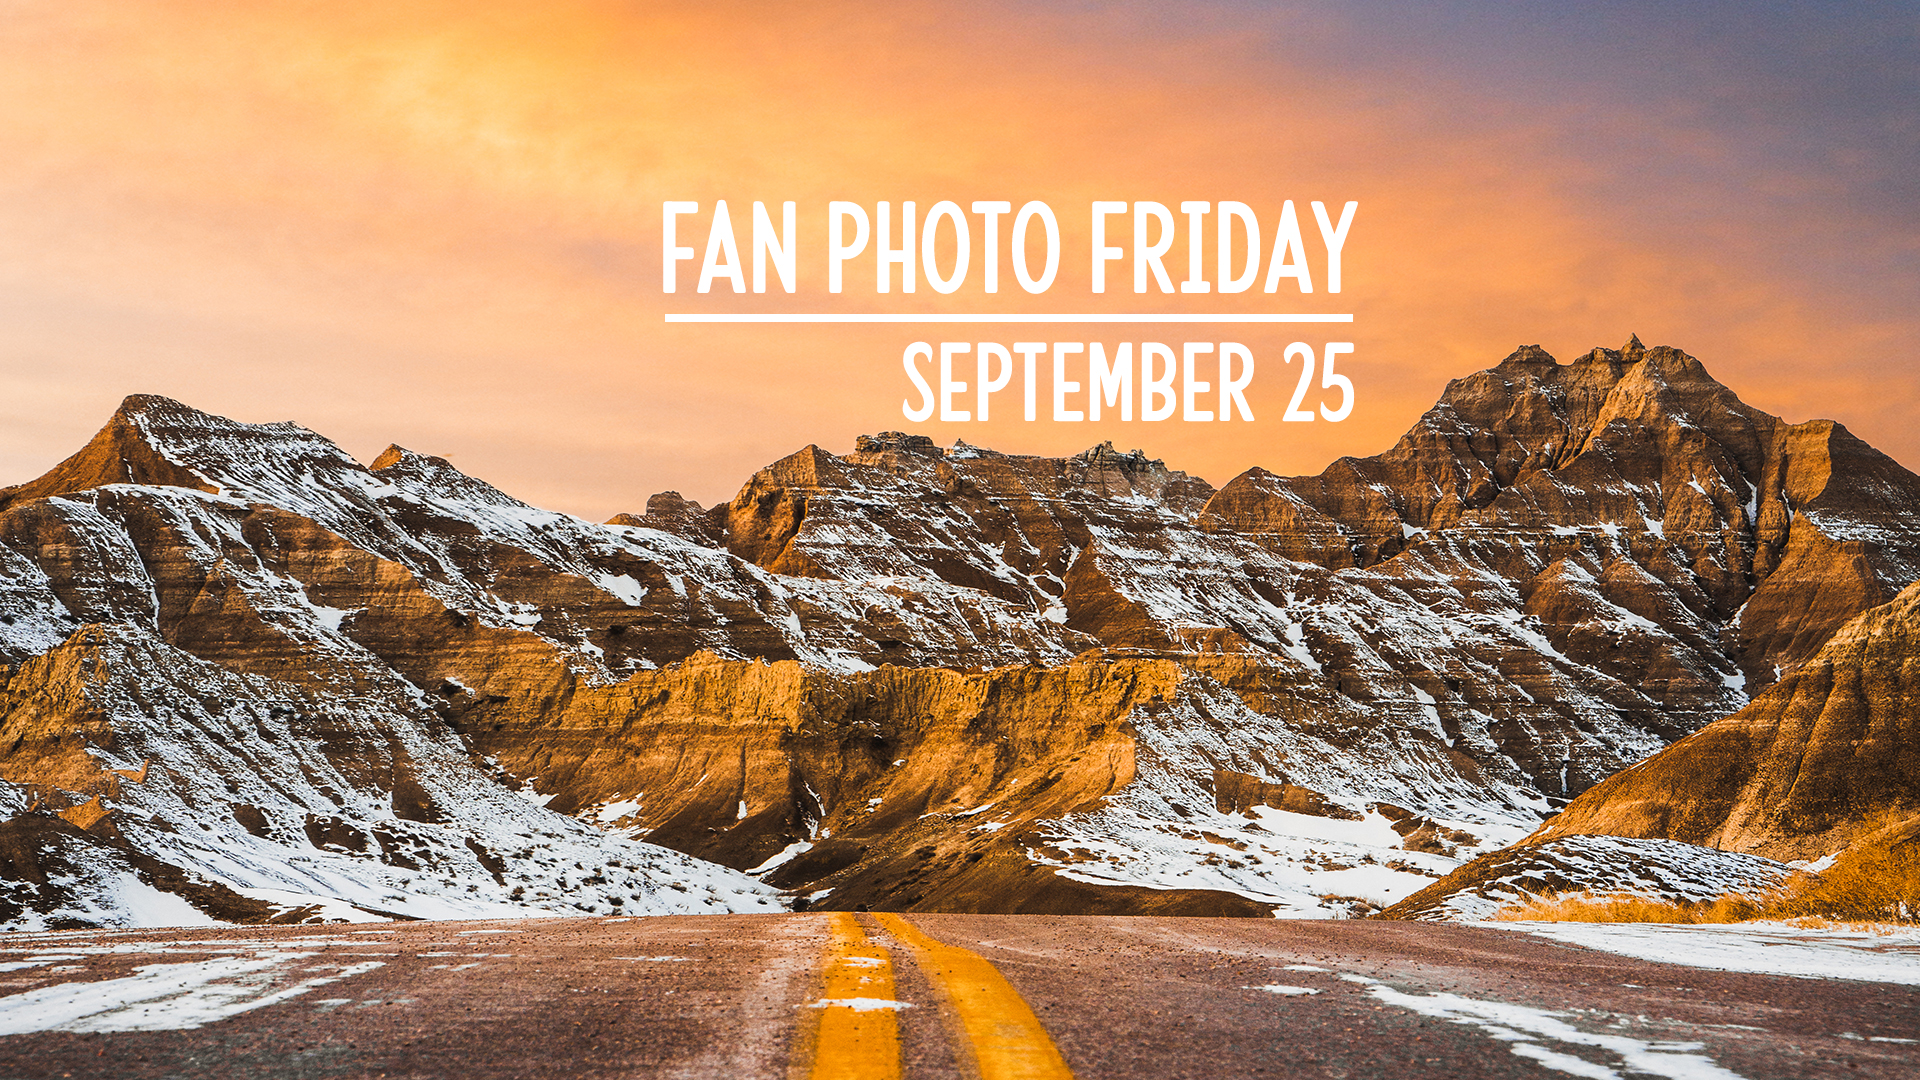 Fan Photo Friday | September 25, 2020